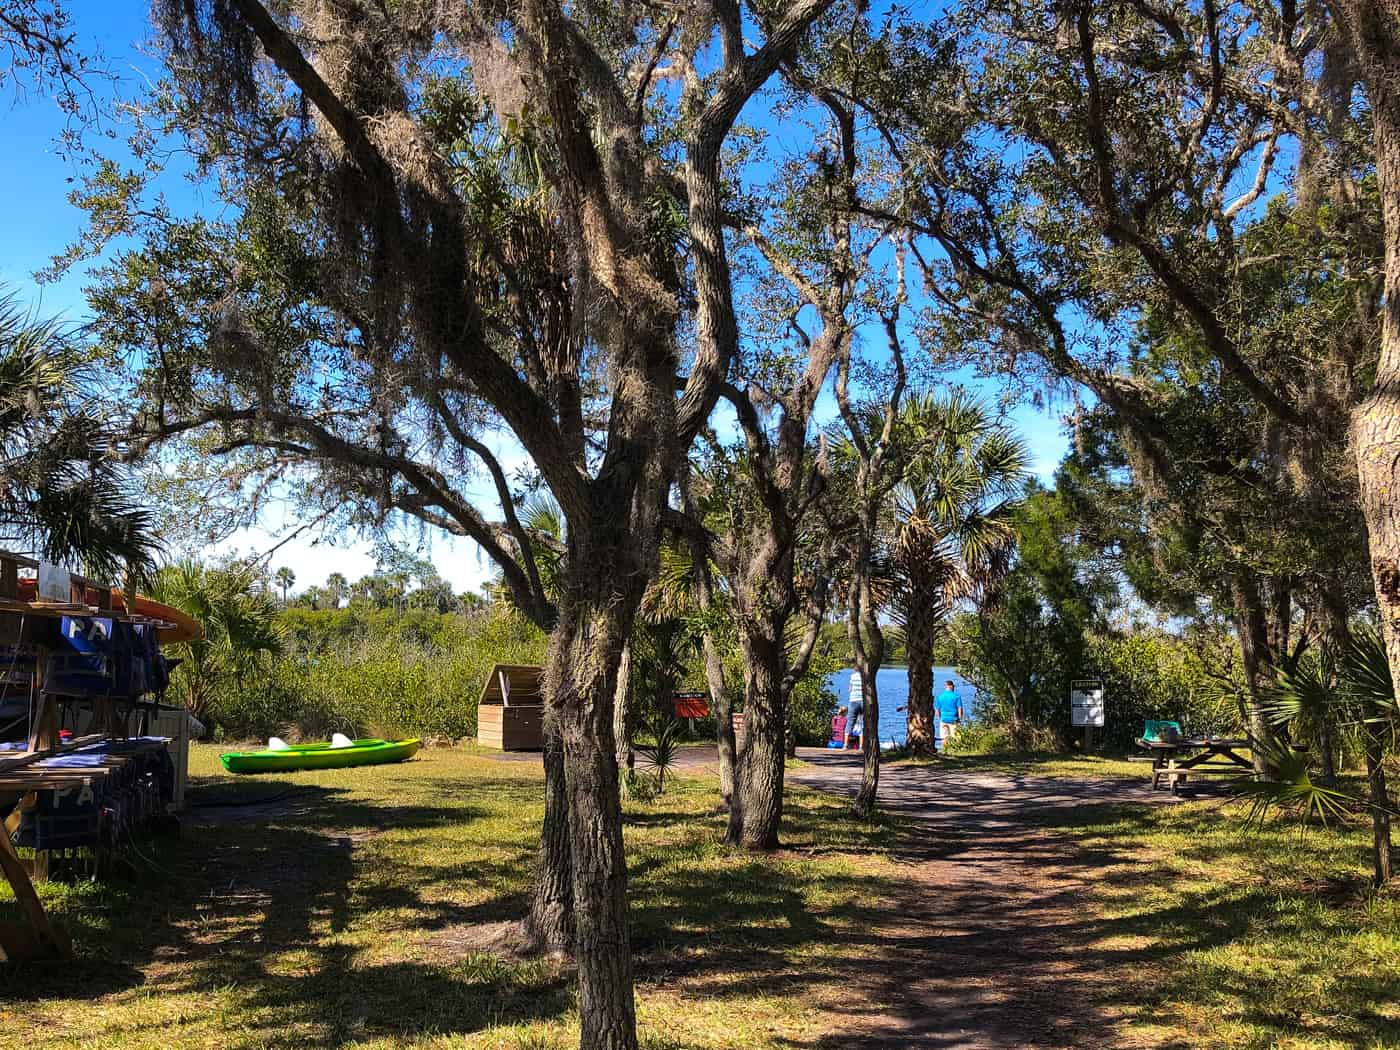 Path as you approach the paddling launch at Werner-Boyce Salt Springs State Park in Port Richey, FL #Florida #FL FLStateParks #CornacopiaInThePark #kayaking #kayak #travel